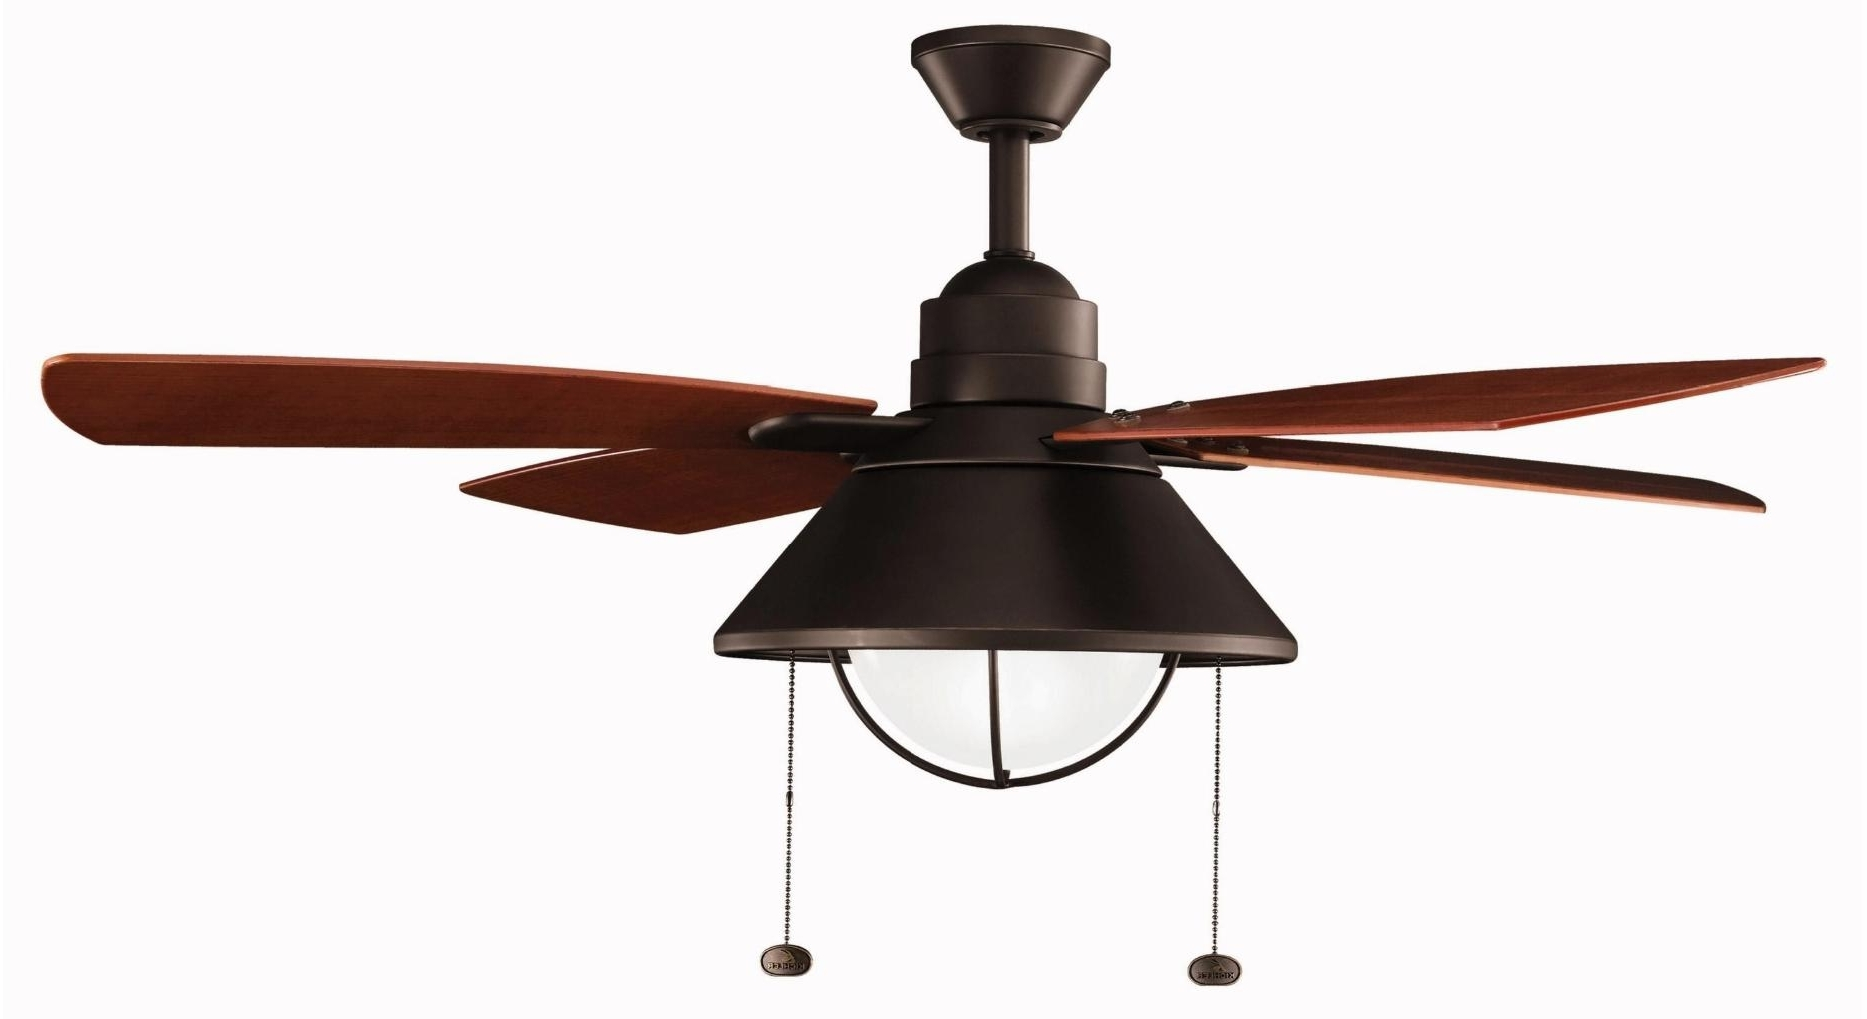 Hugger Outdoor Ceiling Fans With Lights Throughout Latest Decor: Living Hugger Ceiling Fans Trendy Outdoor Ceiling Fans With (View 11 of 20)